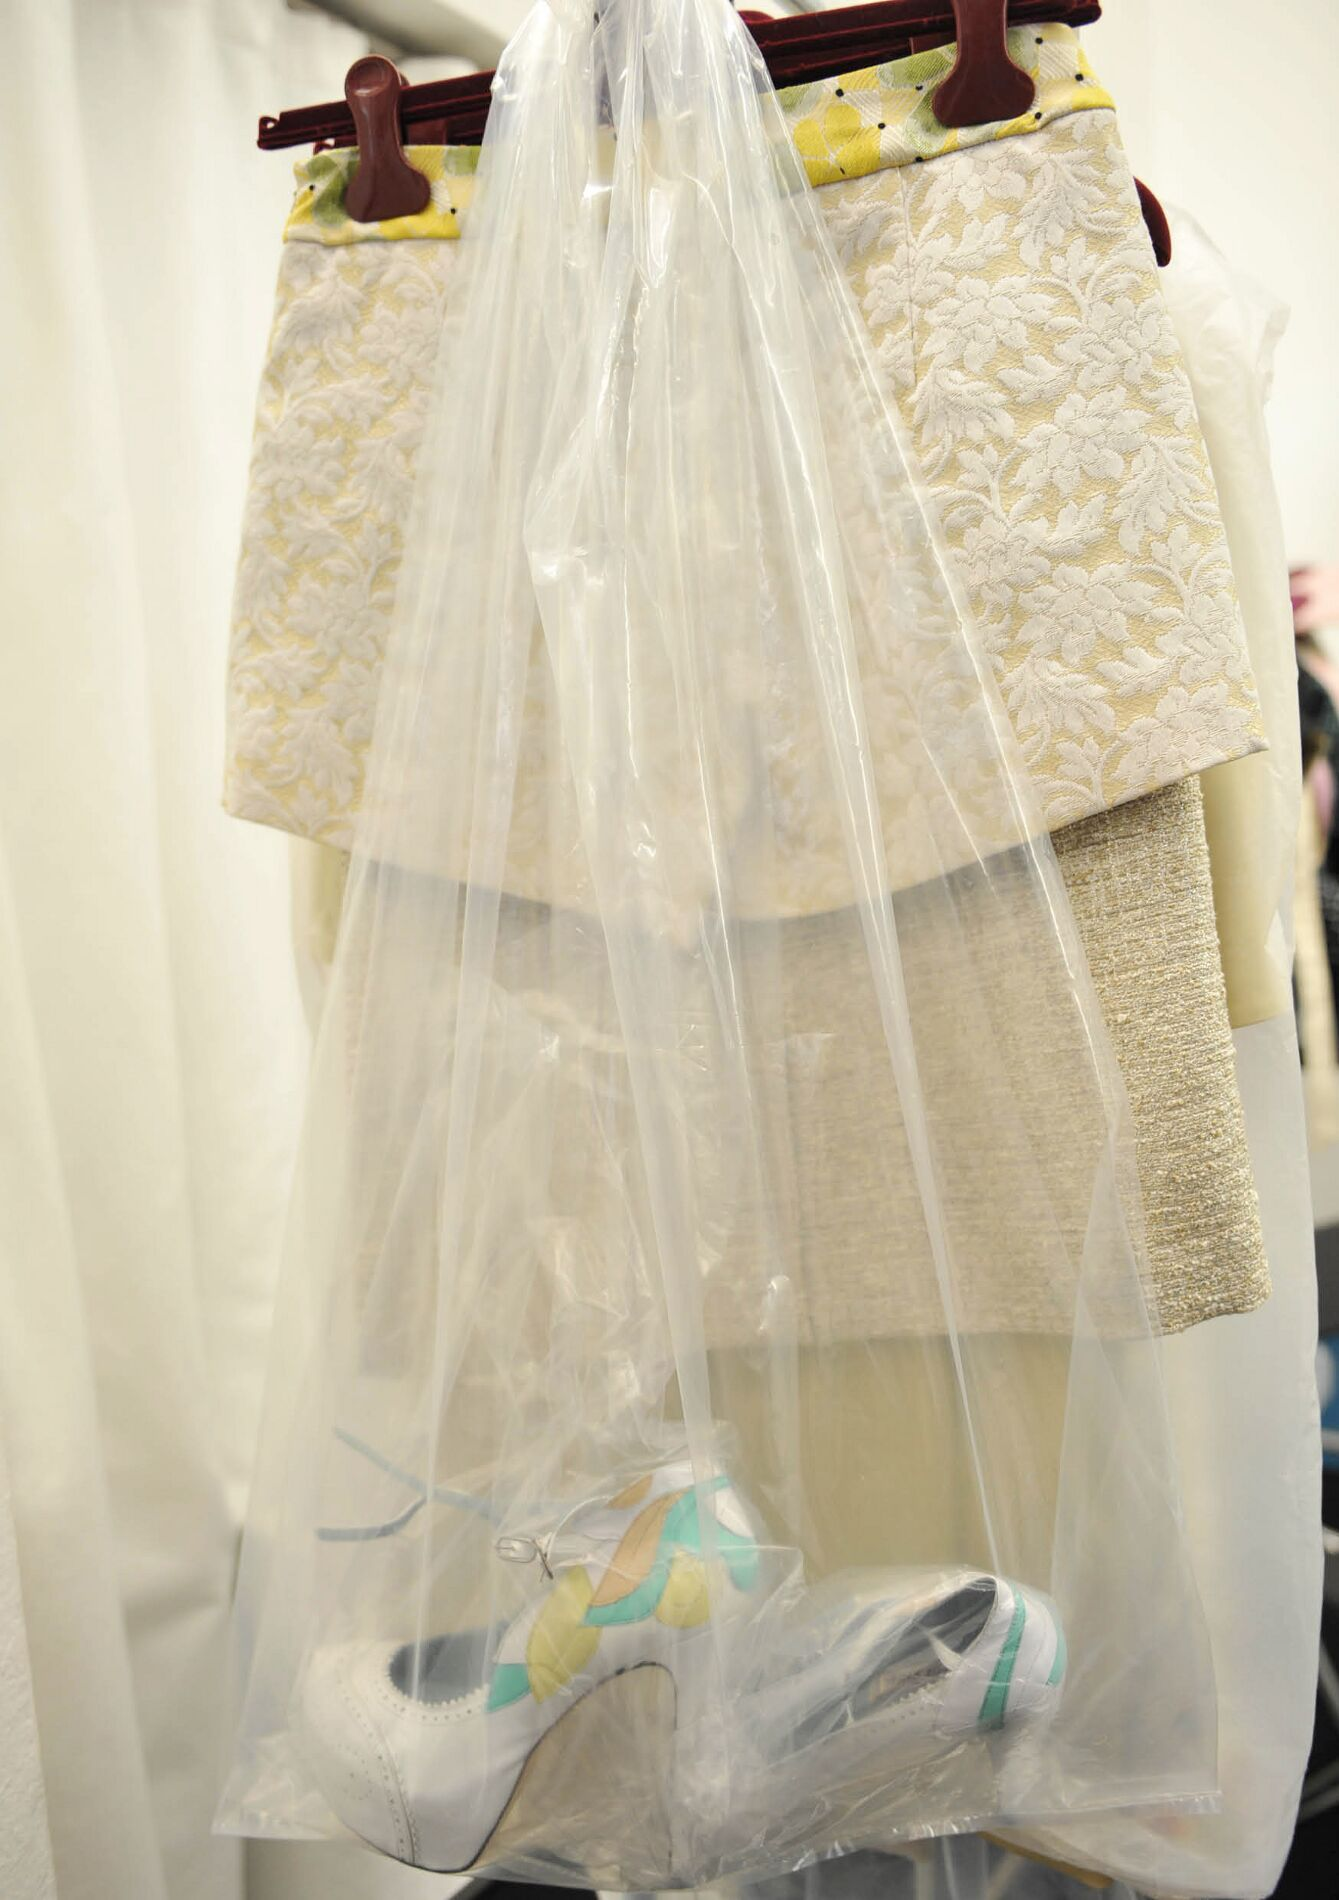 Antonio Marras Backstage Dress